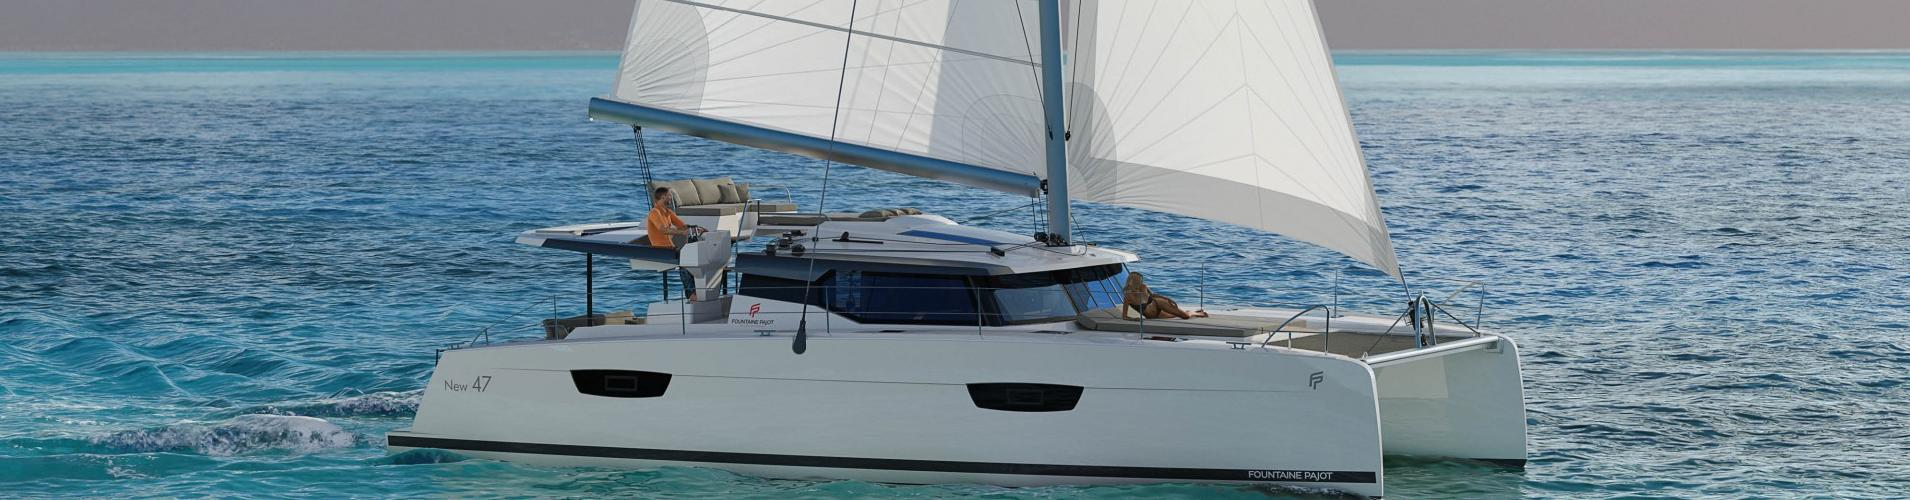 2020. Fountaine Pajot Saona 47